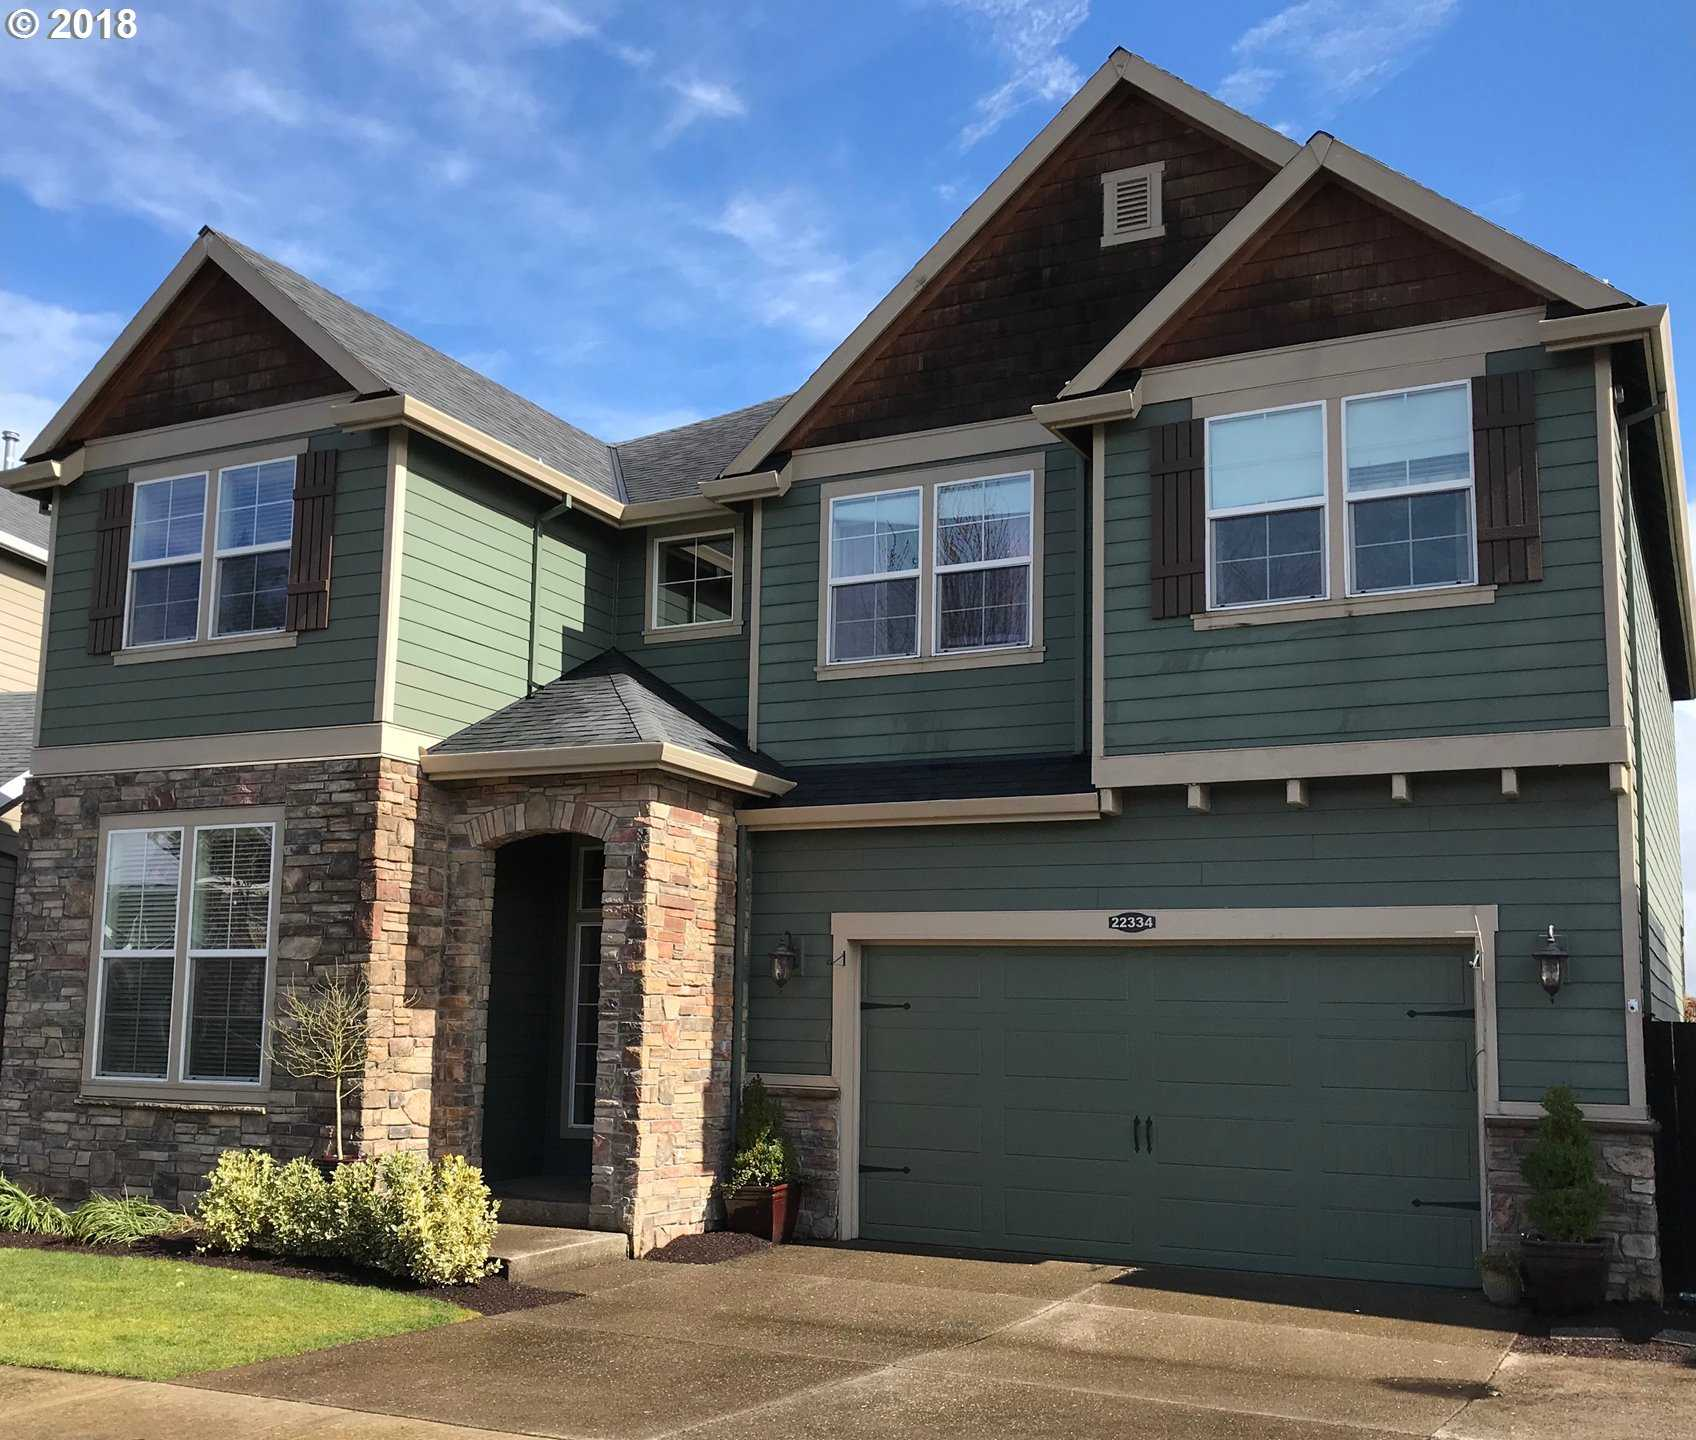 $639,900 - 5Br/4Ba -  for Sale in Tualatin